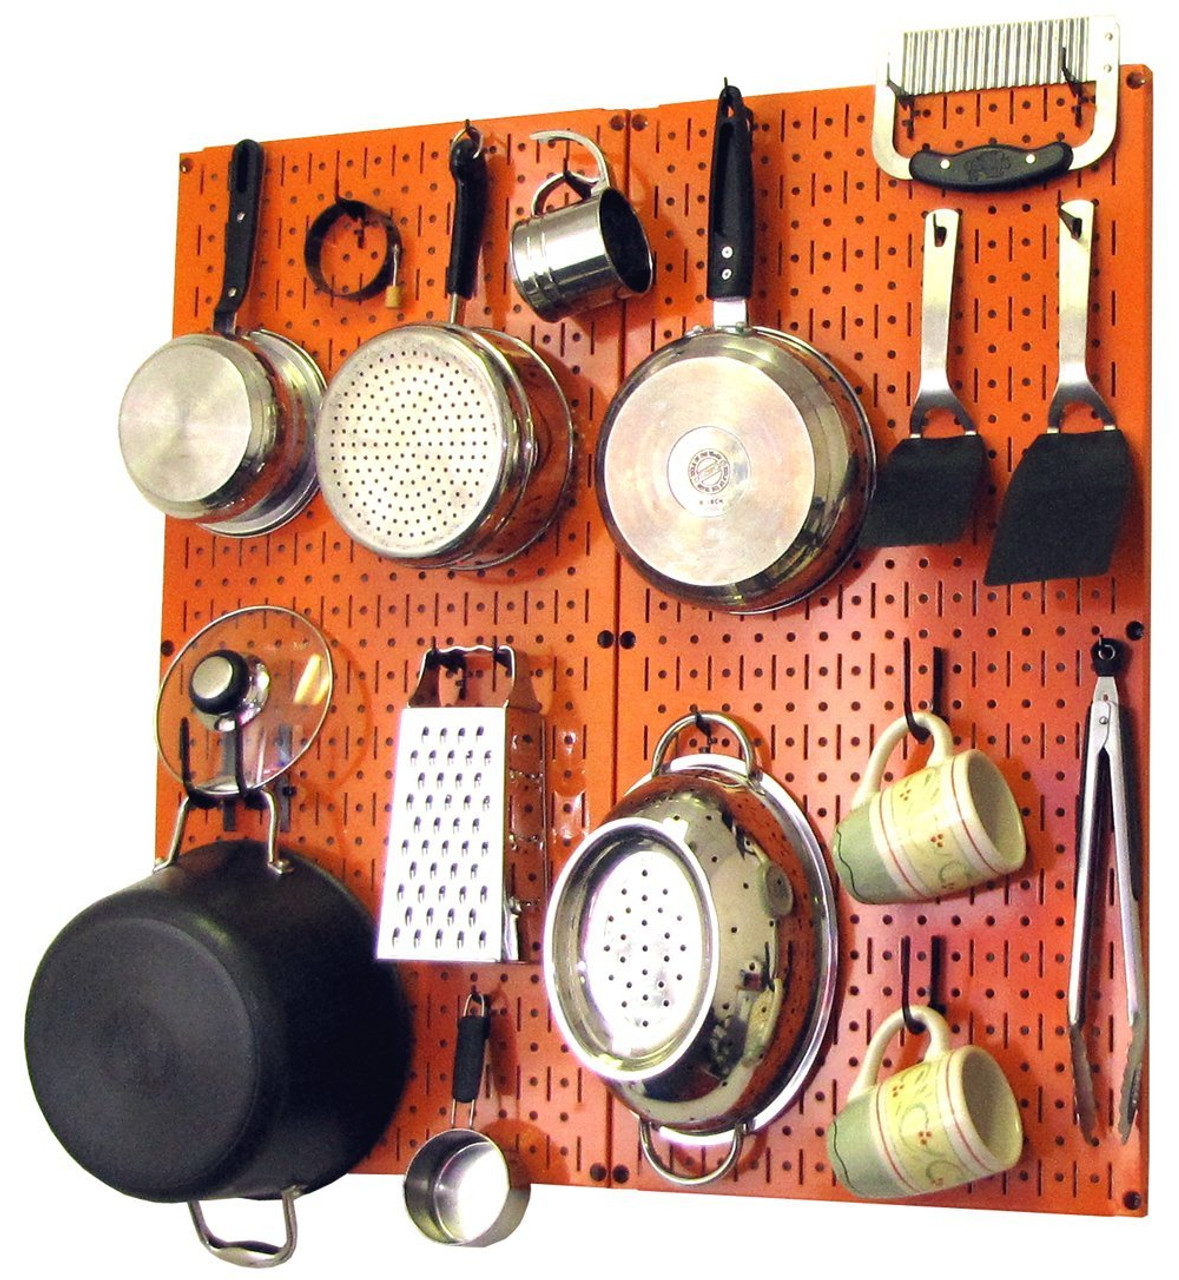 Kitchen Pegboard Organizer Kit Pots & Pans Rack - Orange Pegboard with Hooks